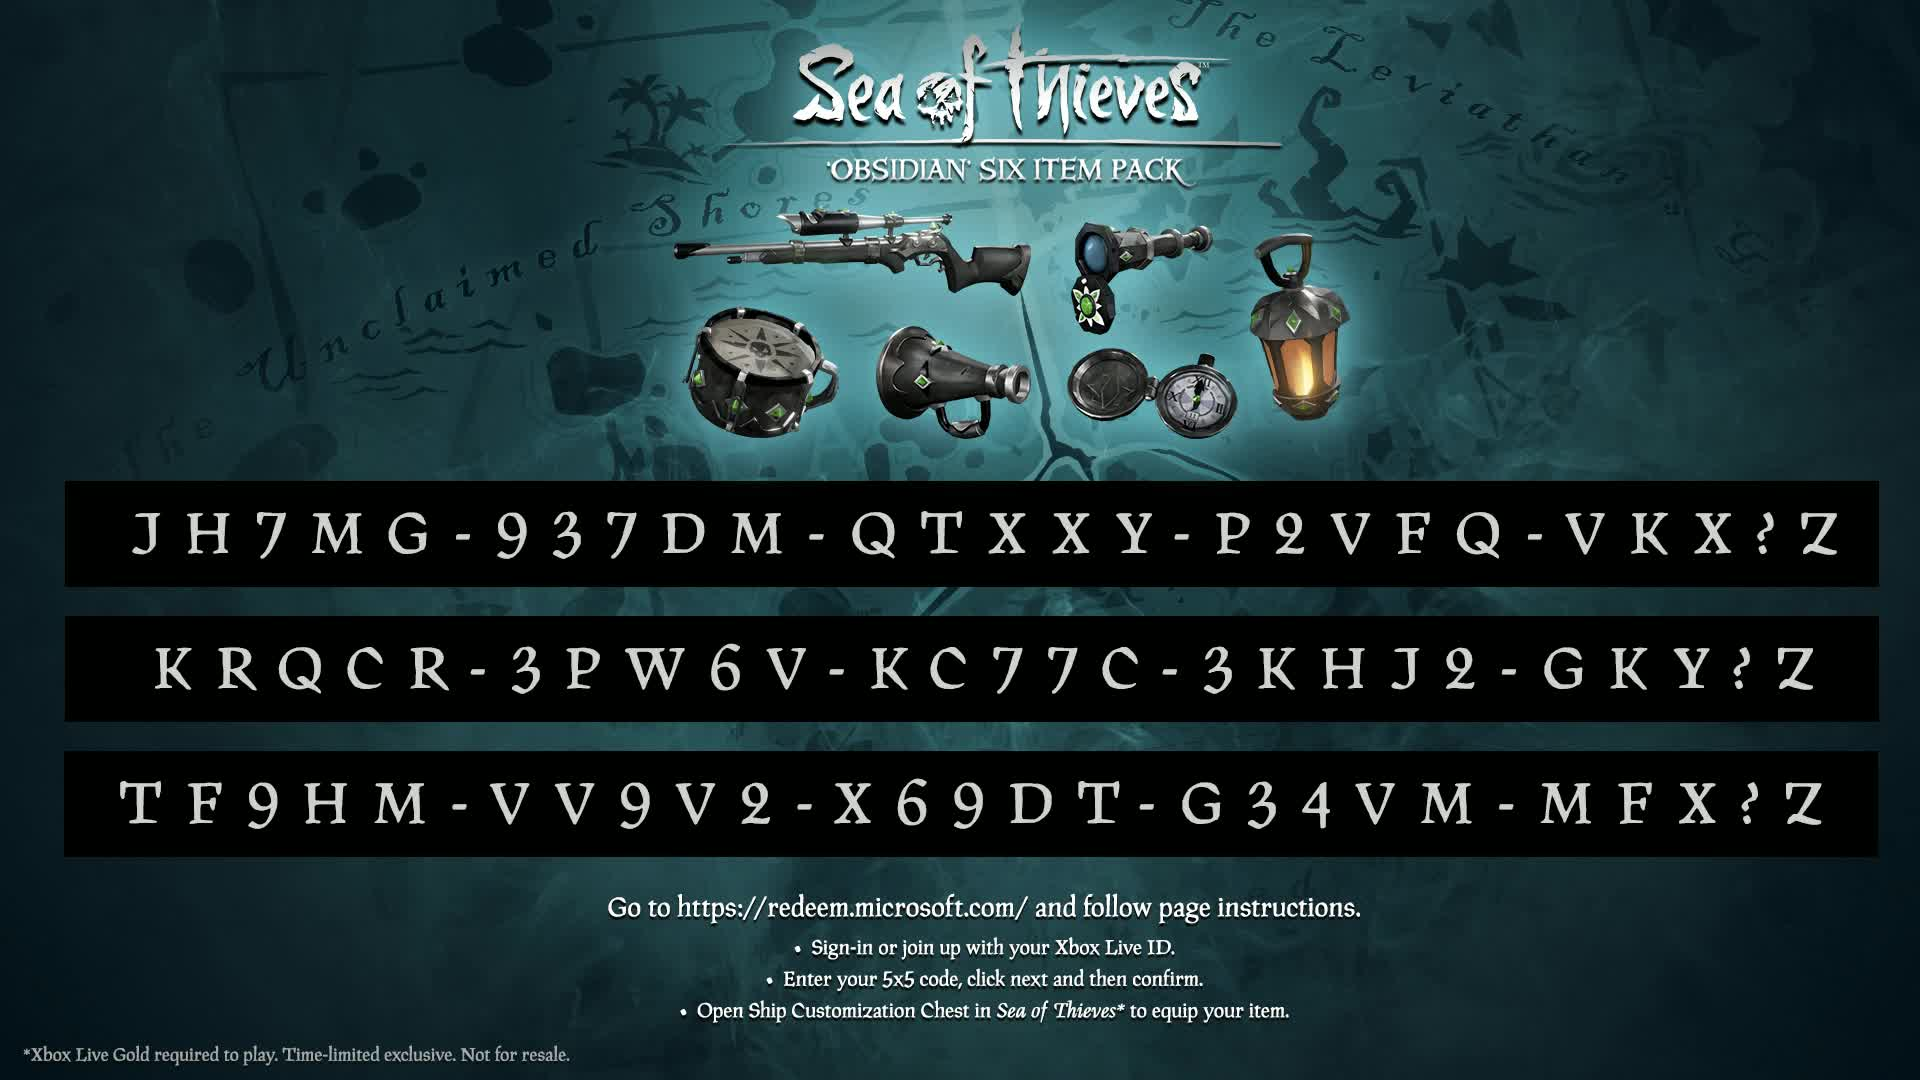 seaofthieves - Sea of Thieves Weekly Stream - The Cursed